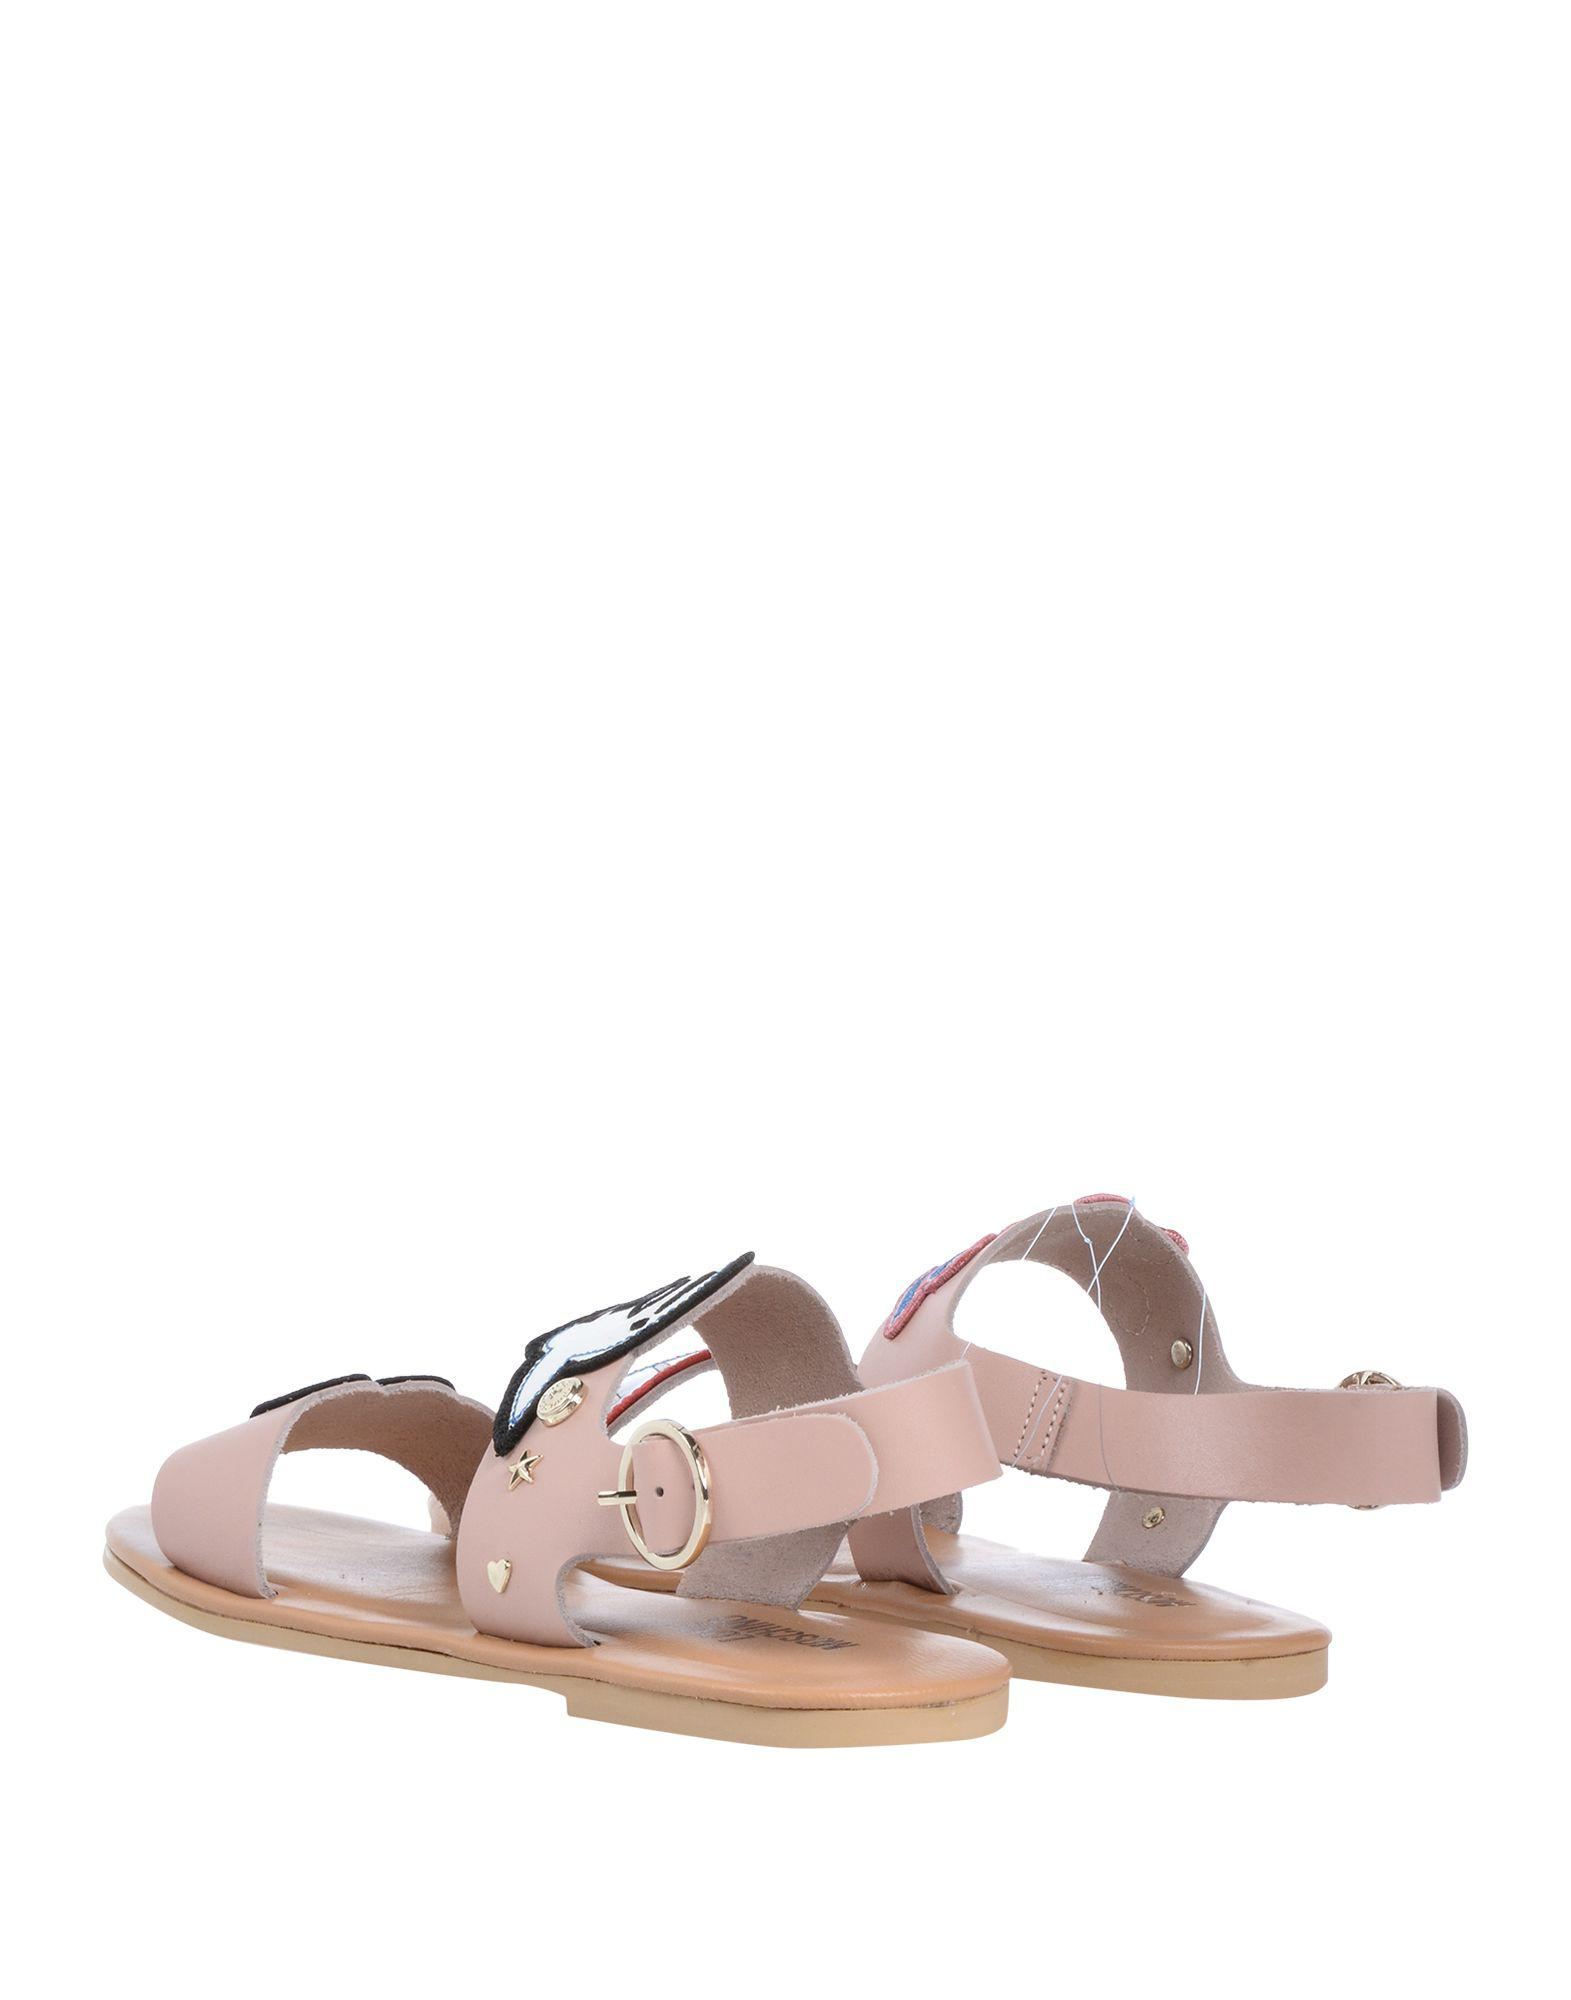 5a943264fa9b Lyst - Love Moschino Sandals in Pink